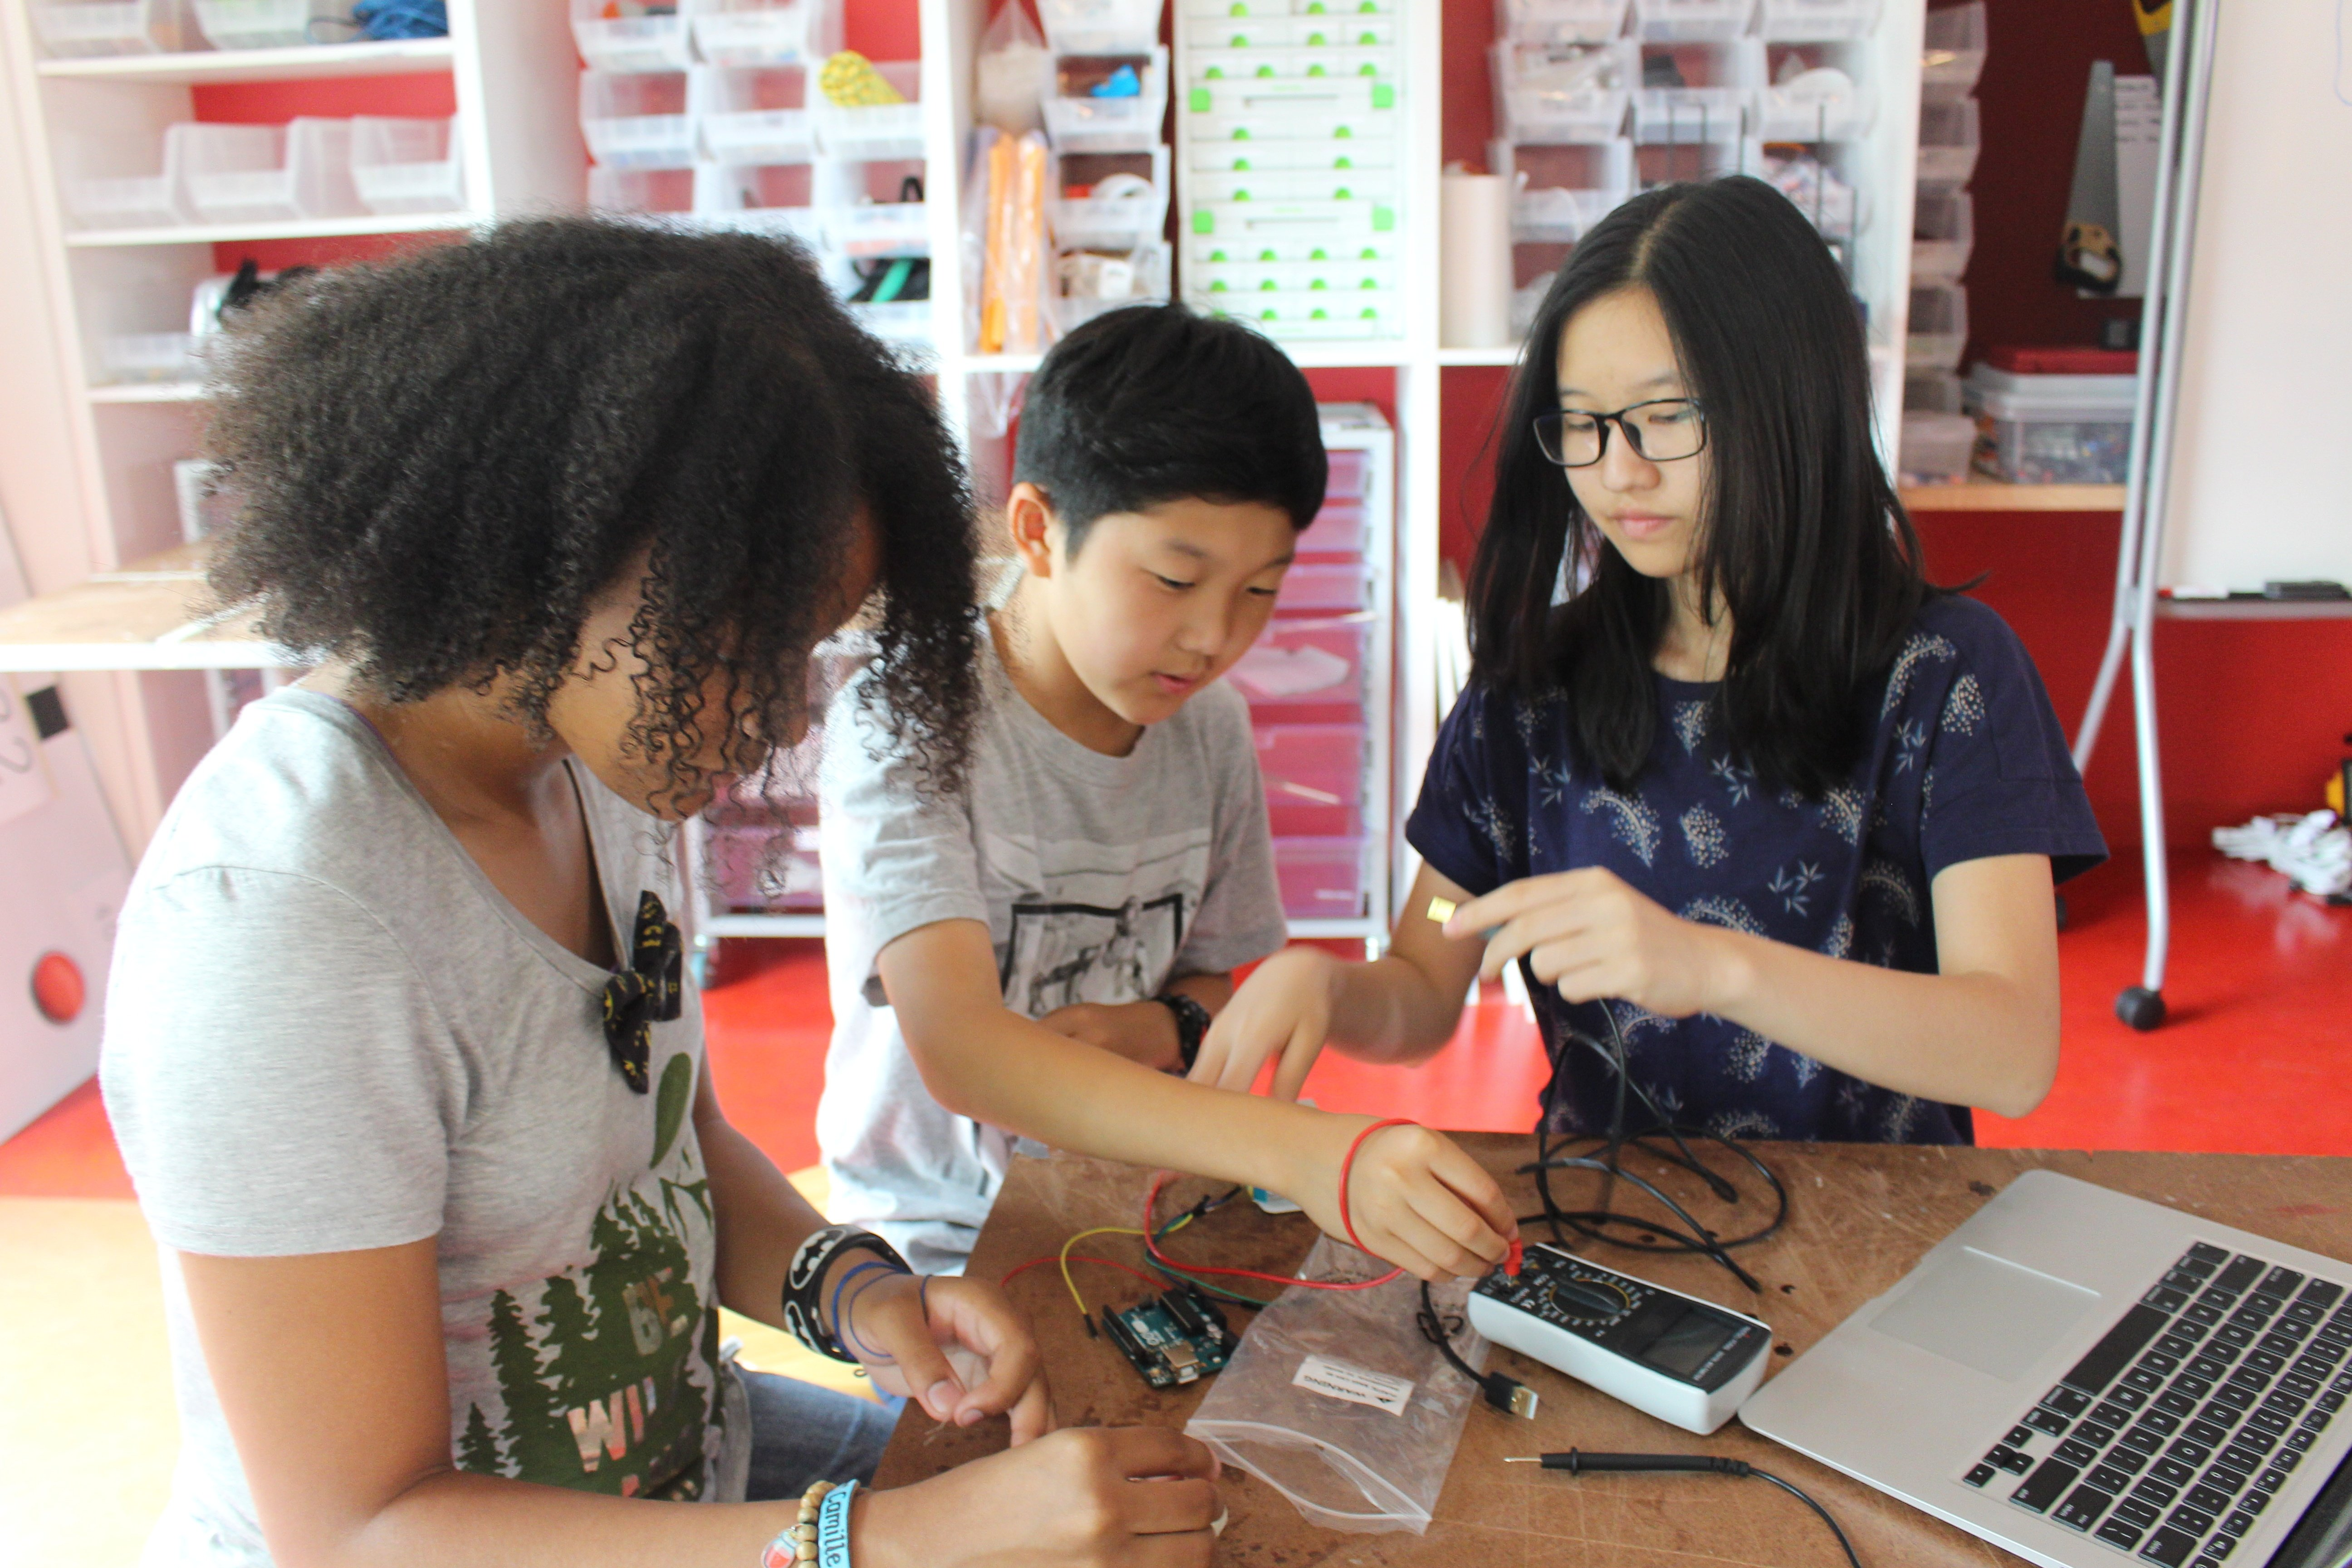 Seventh graders hard at work on an Electronics project.